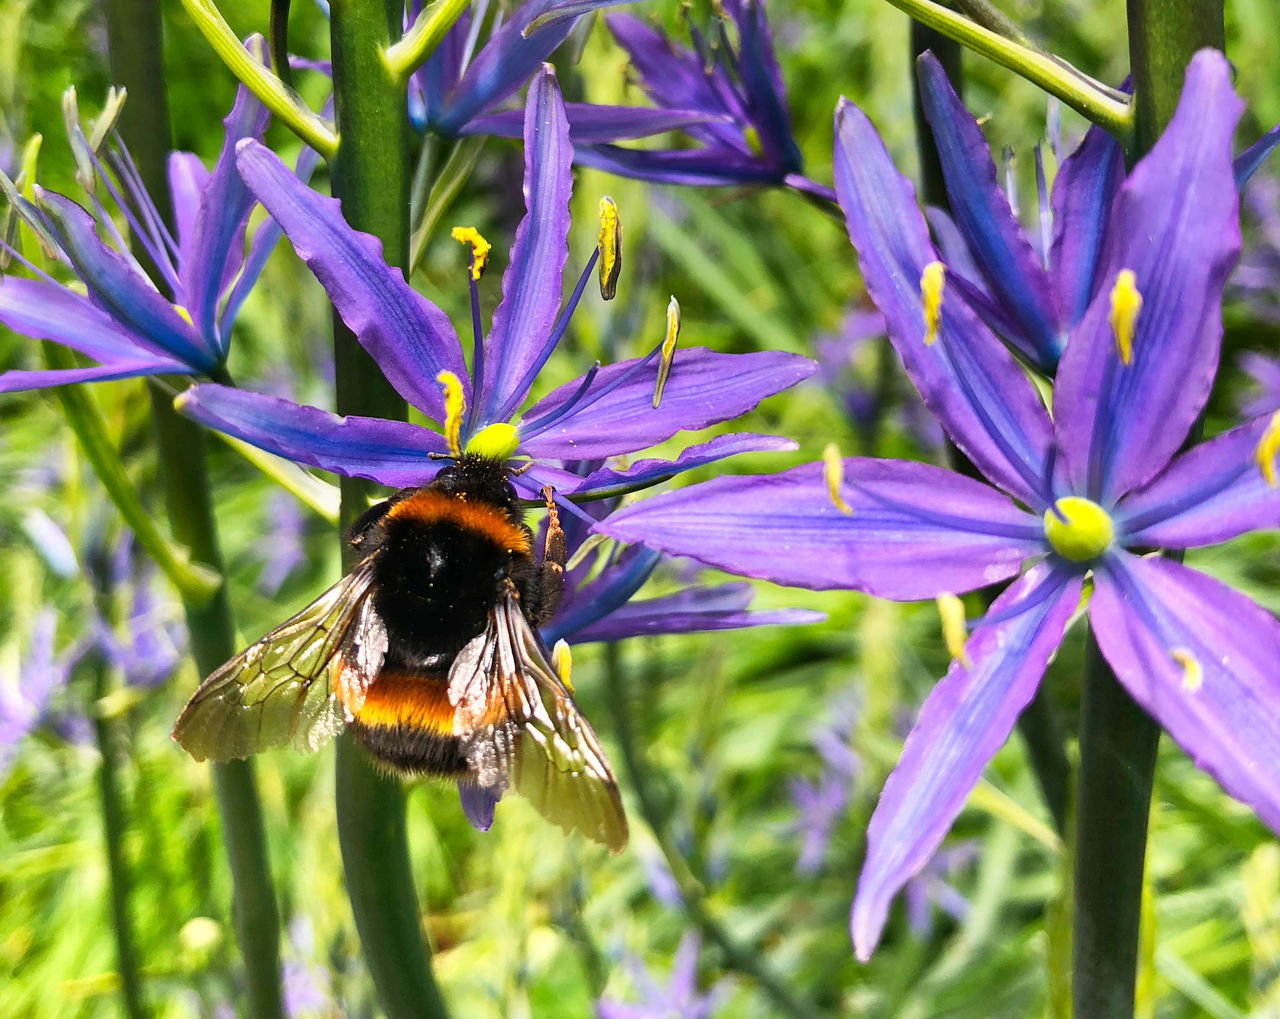 flowering plant, flower, plant, invertebrate, animal themes, insect, one animal, bee, animals in the wild, beauty in nature, animal wildlife, fragility, petal, animal, vulnerability, growth, flower head, freshness, close-up, pollination, bumblebee, purple, no people, pollen